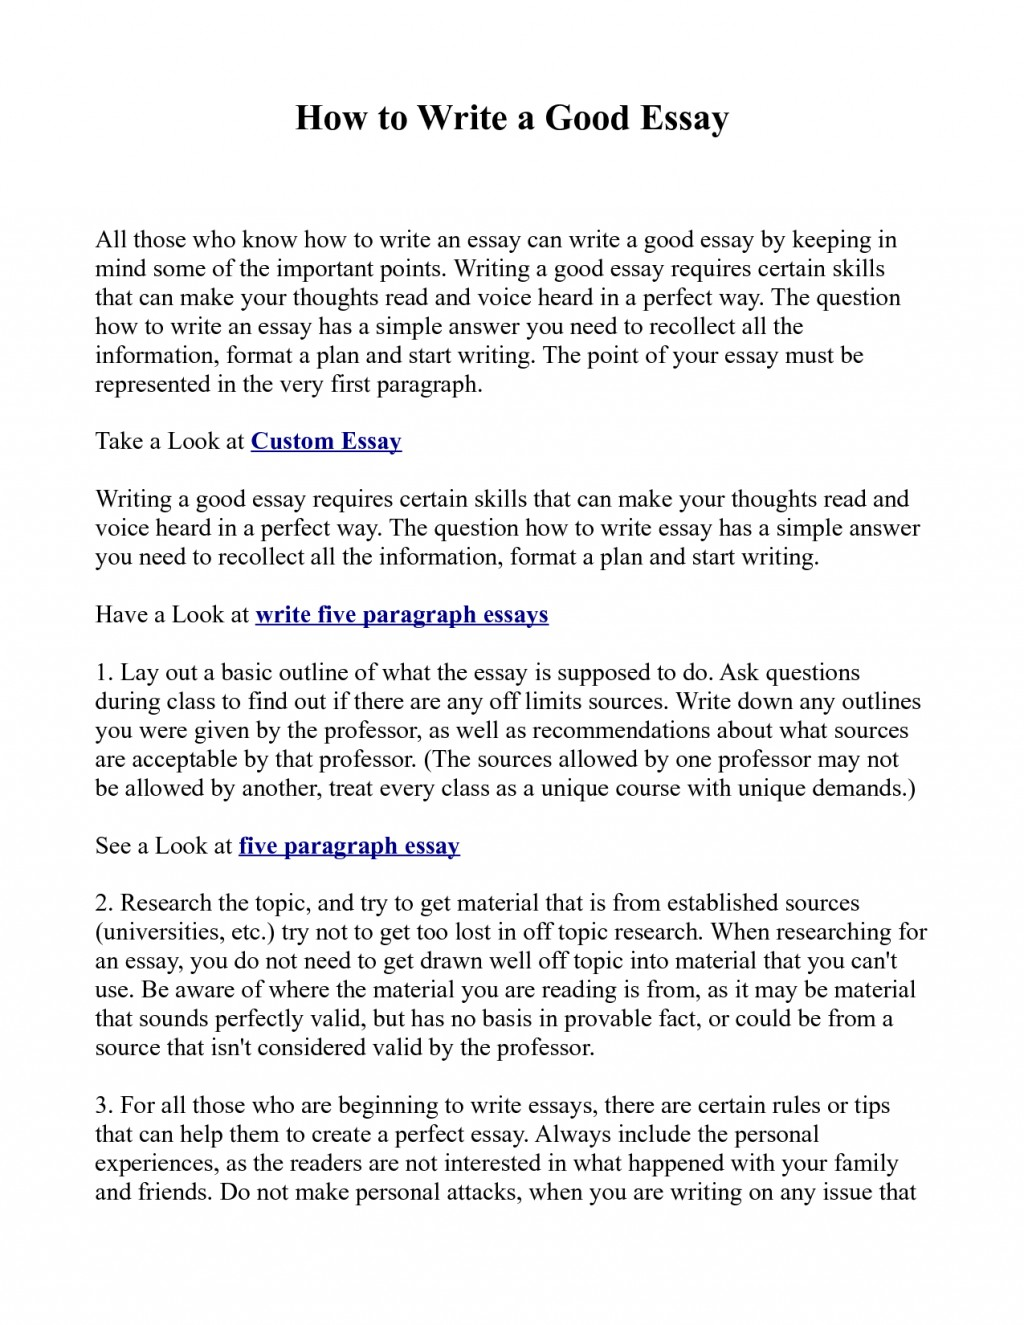 007 Ex1id5s6cl Essay Example How To Start Amazing An Argumentative About A Book With Definition Your Life Large